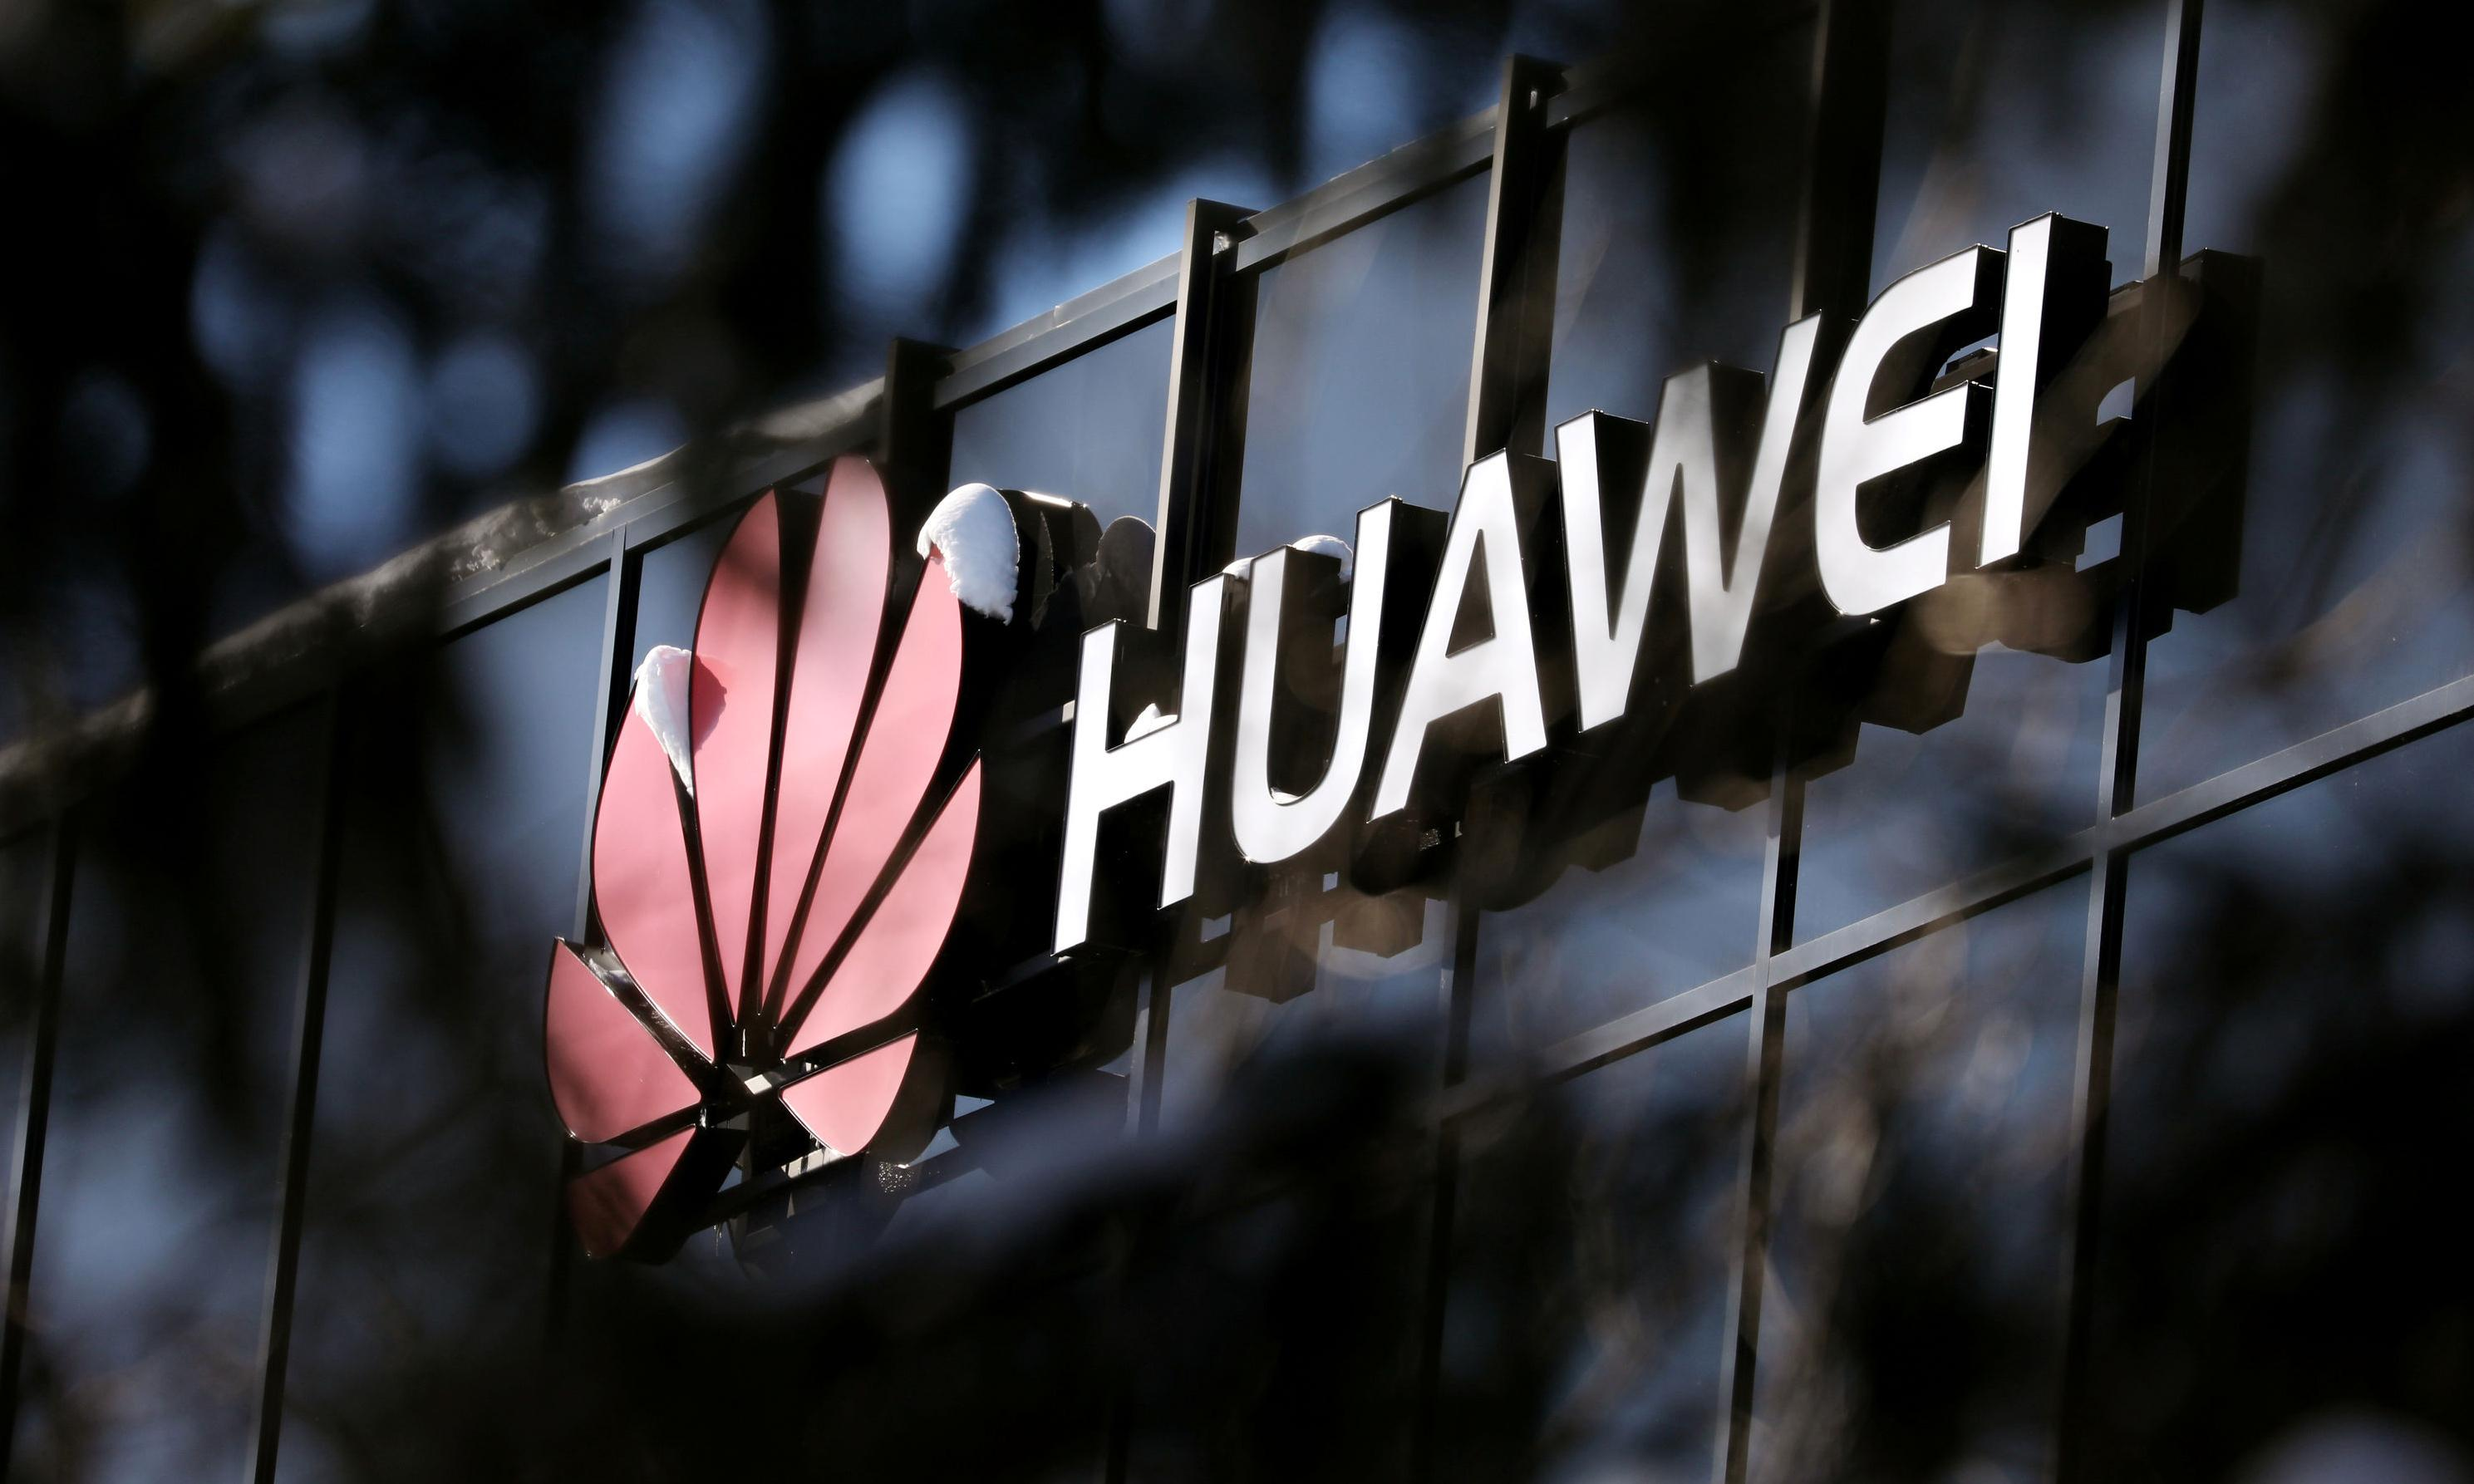 UK security chiefs: Huawei risk in 5G can be contained